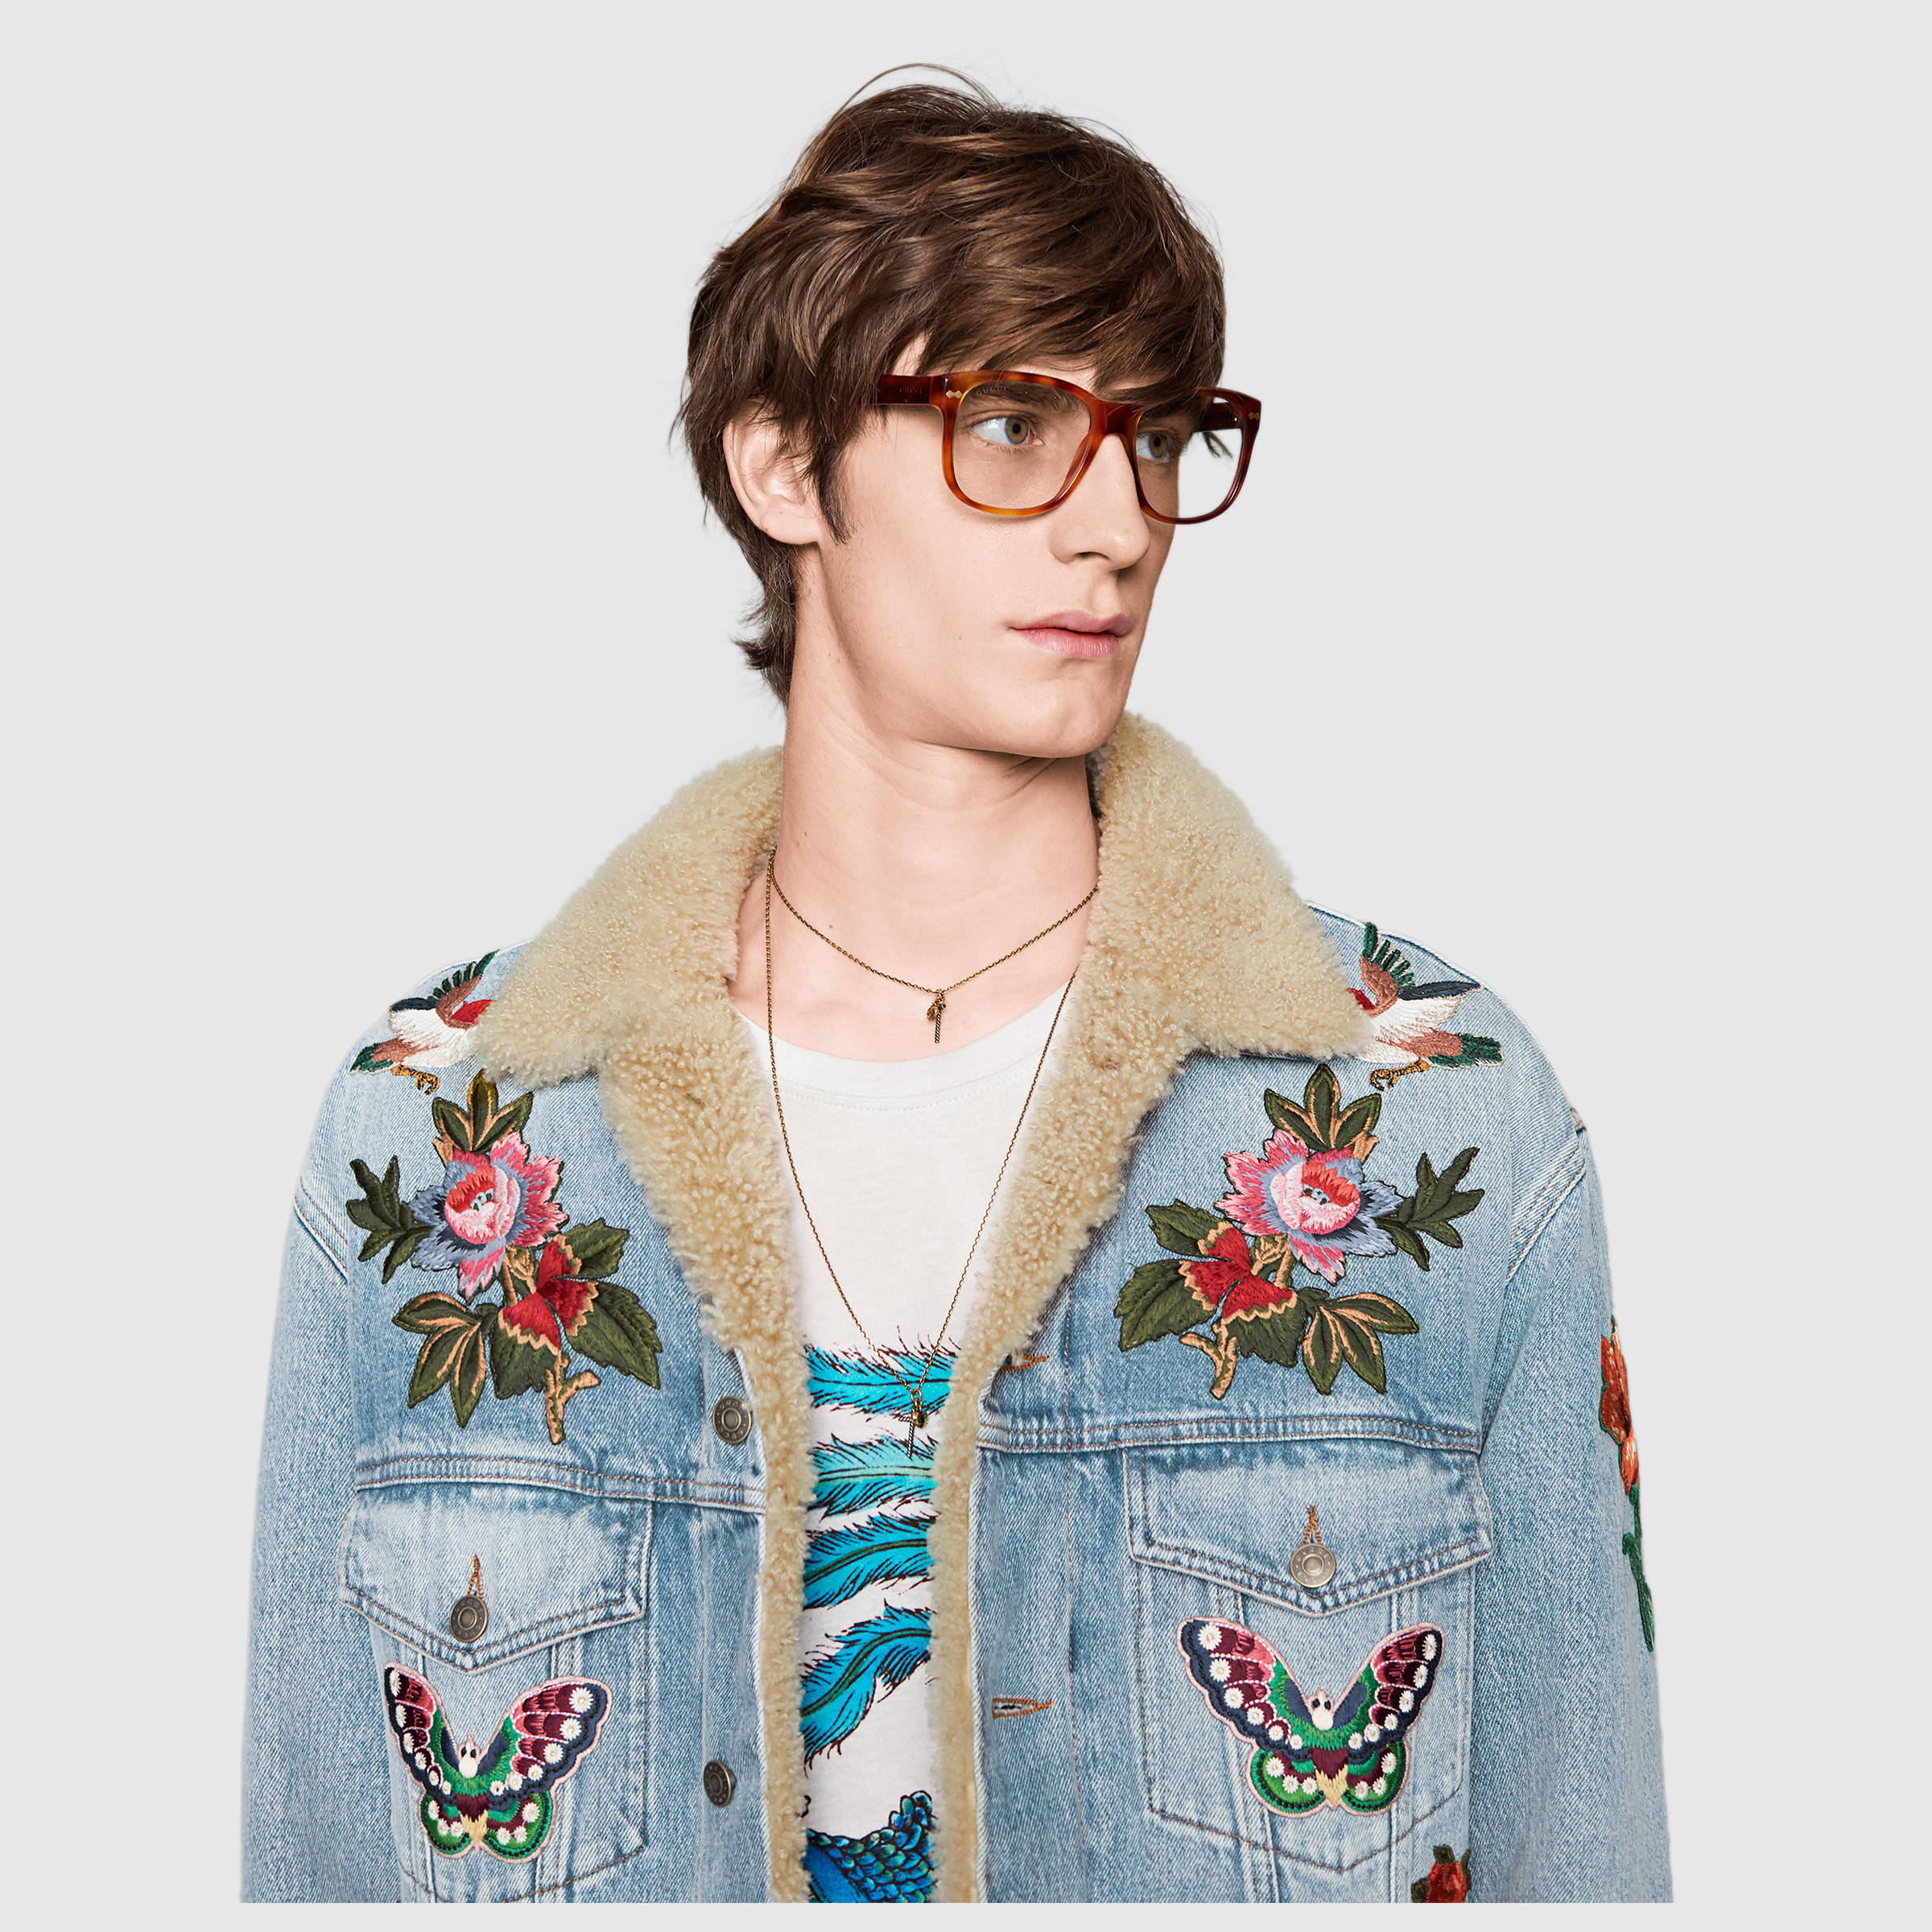 408623_xr240_4417_005_100_0000_light-embroidered-denim-jacket-with-shearling